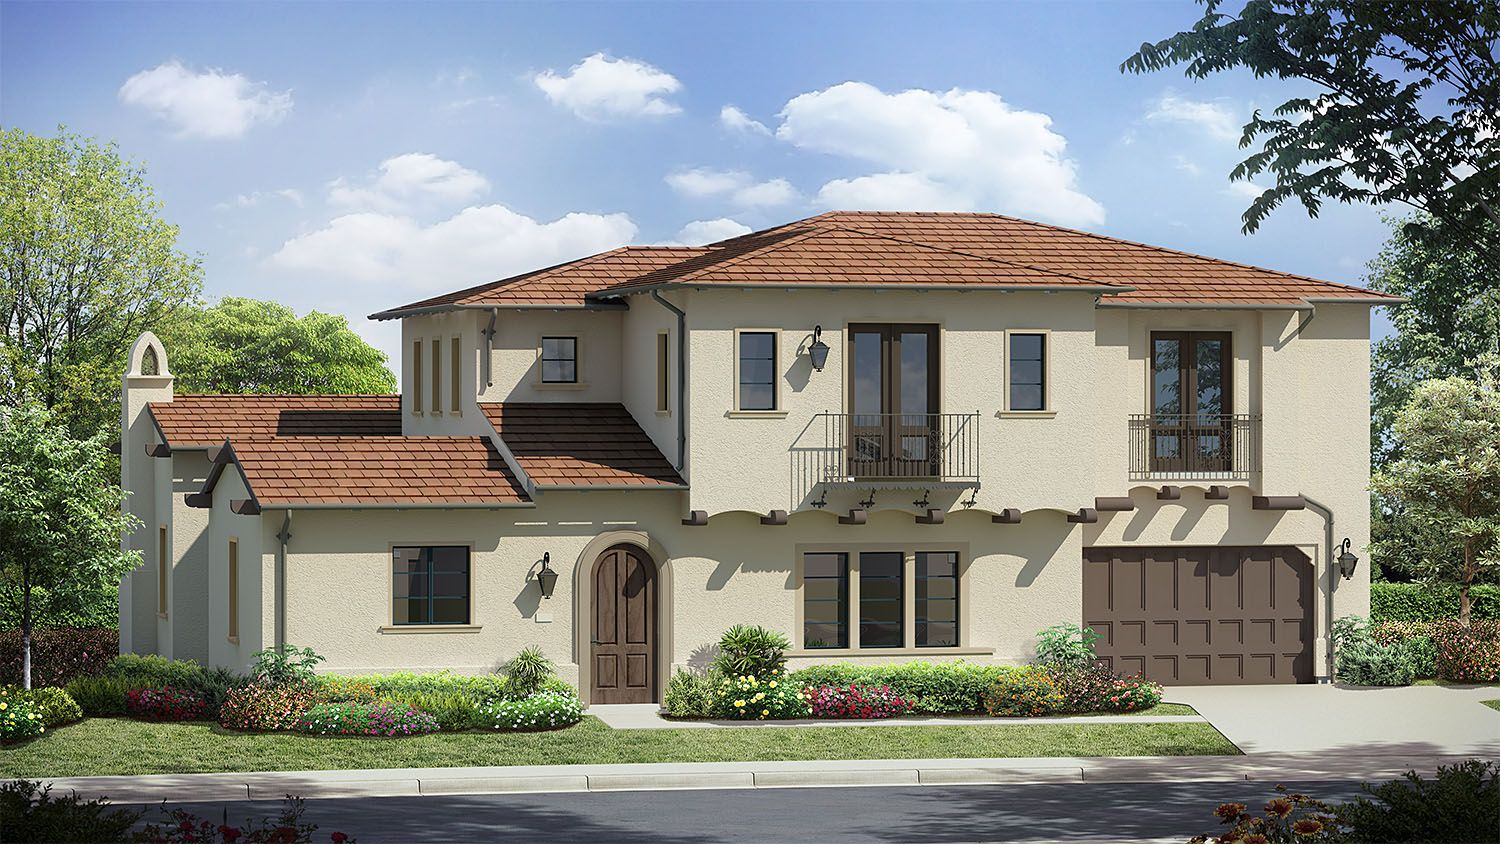 Single Family for Sale at Estancia At Cielo - Residence Three 18252 Avenida Manantial Rancho Santa Fe, California 92067 United States